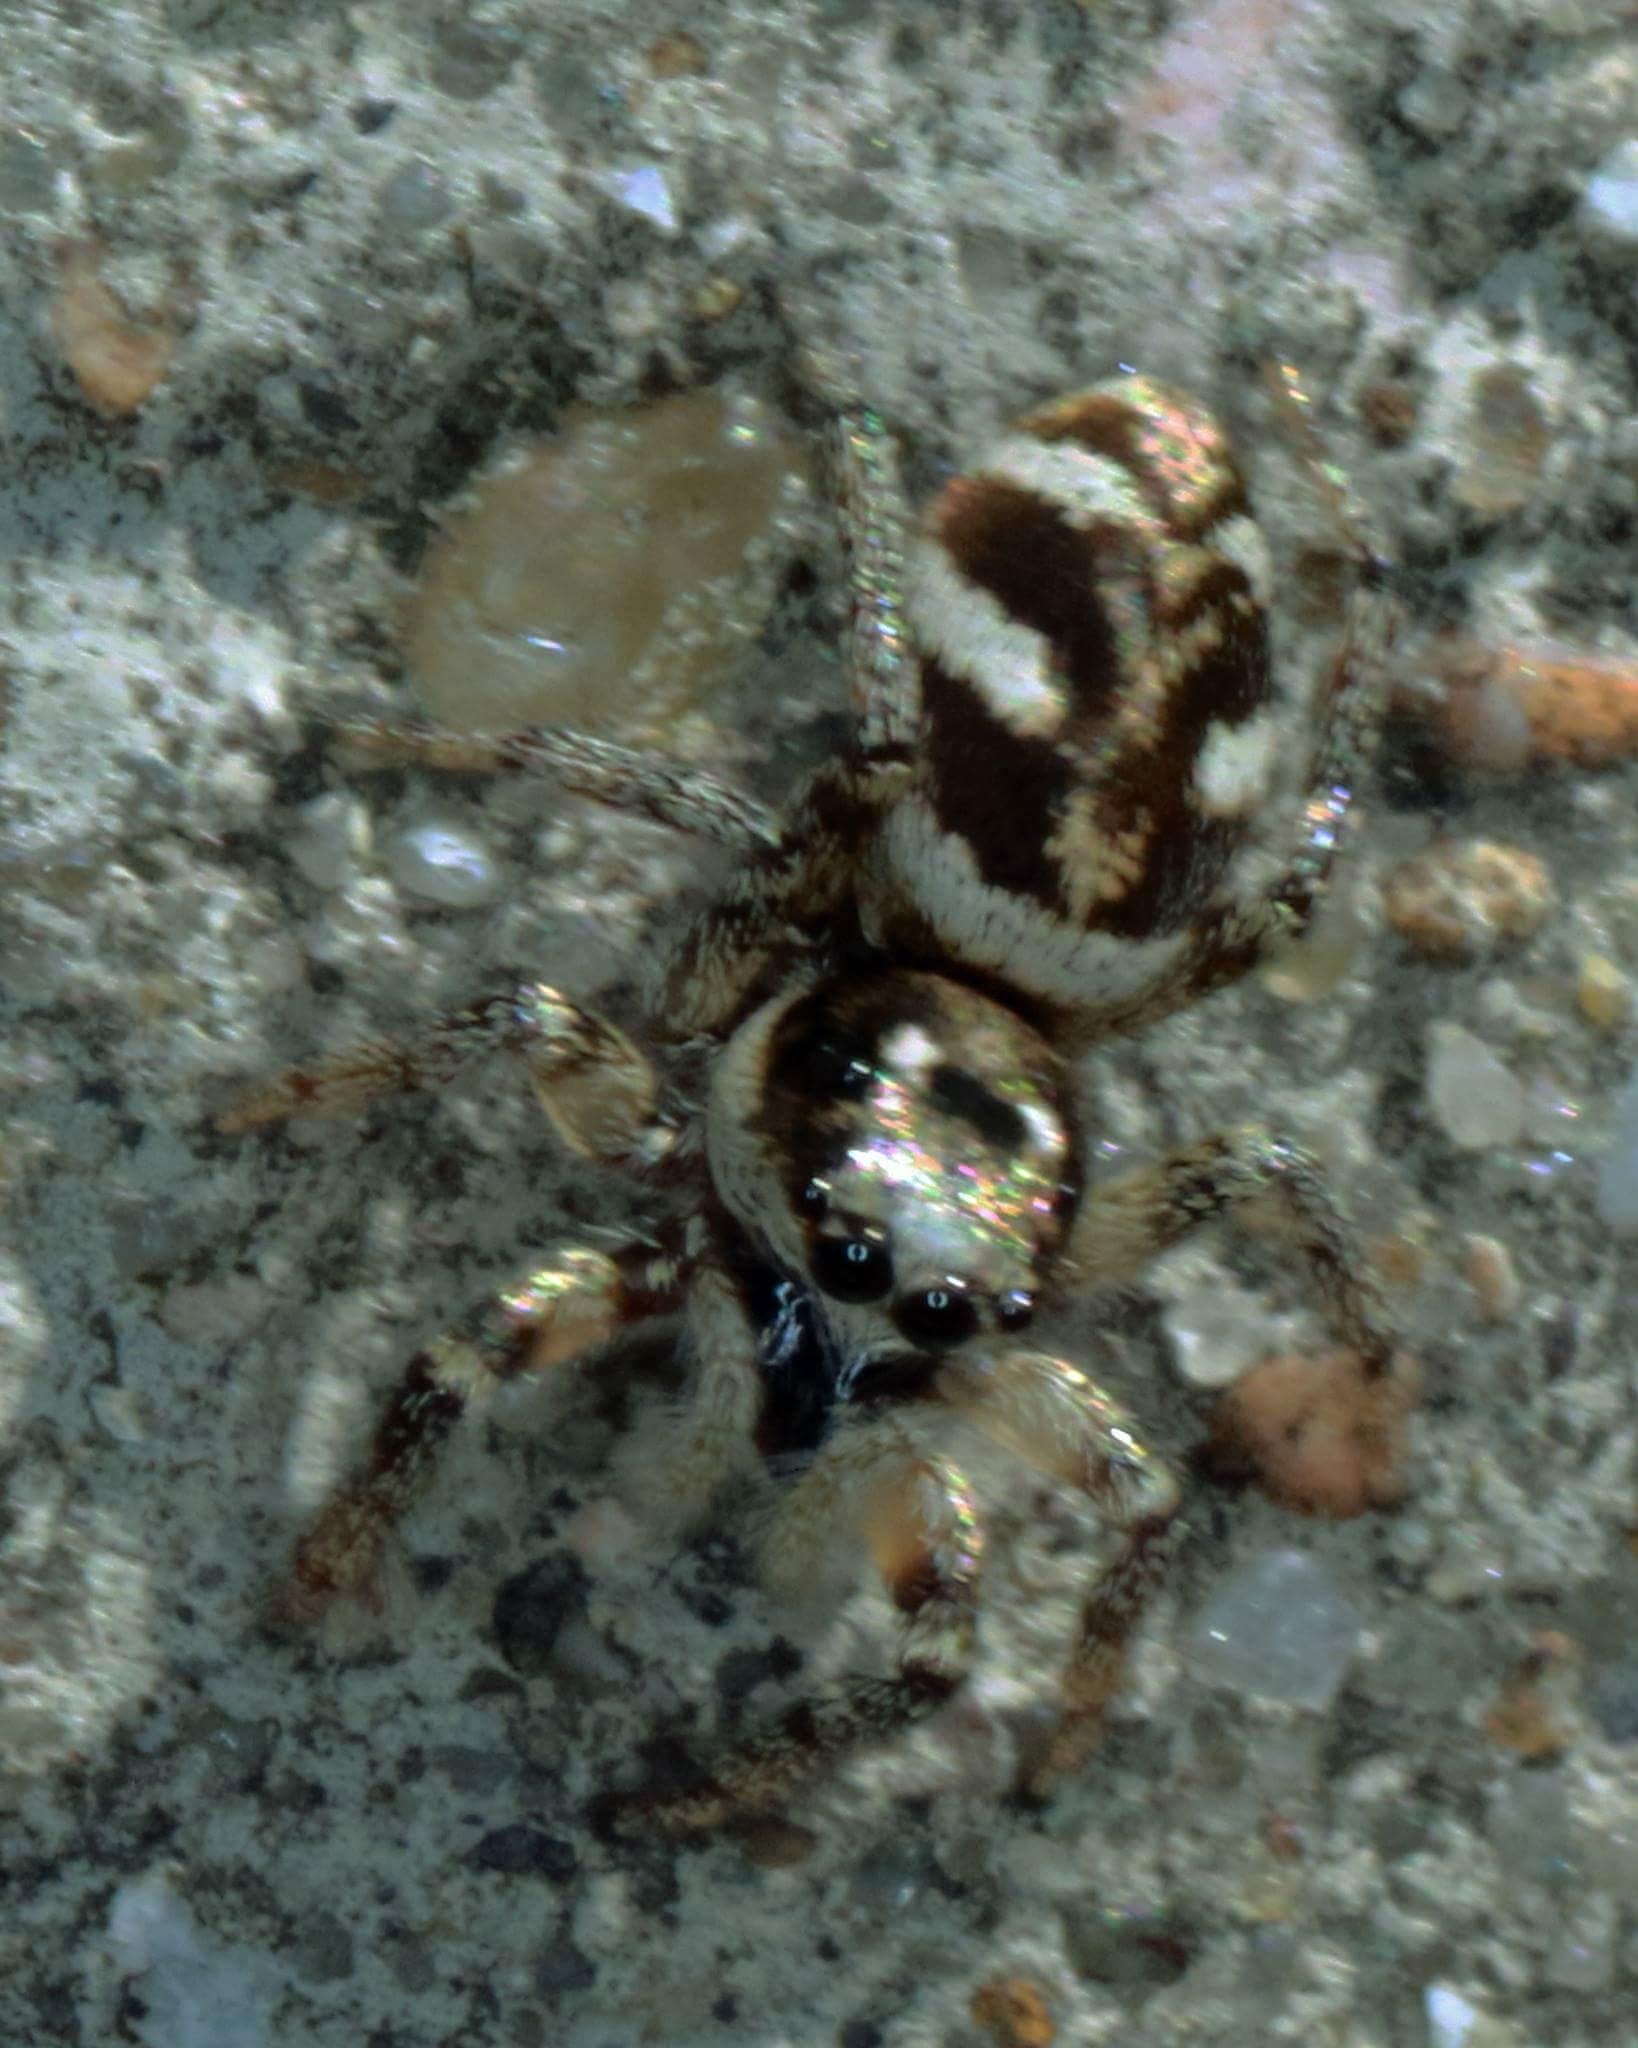 Well camoflaged spider by Nicholas Rawsthorne